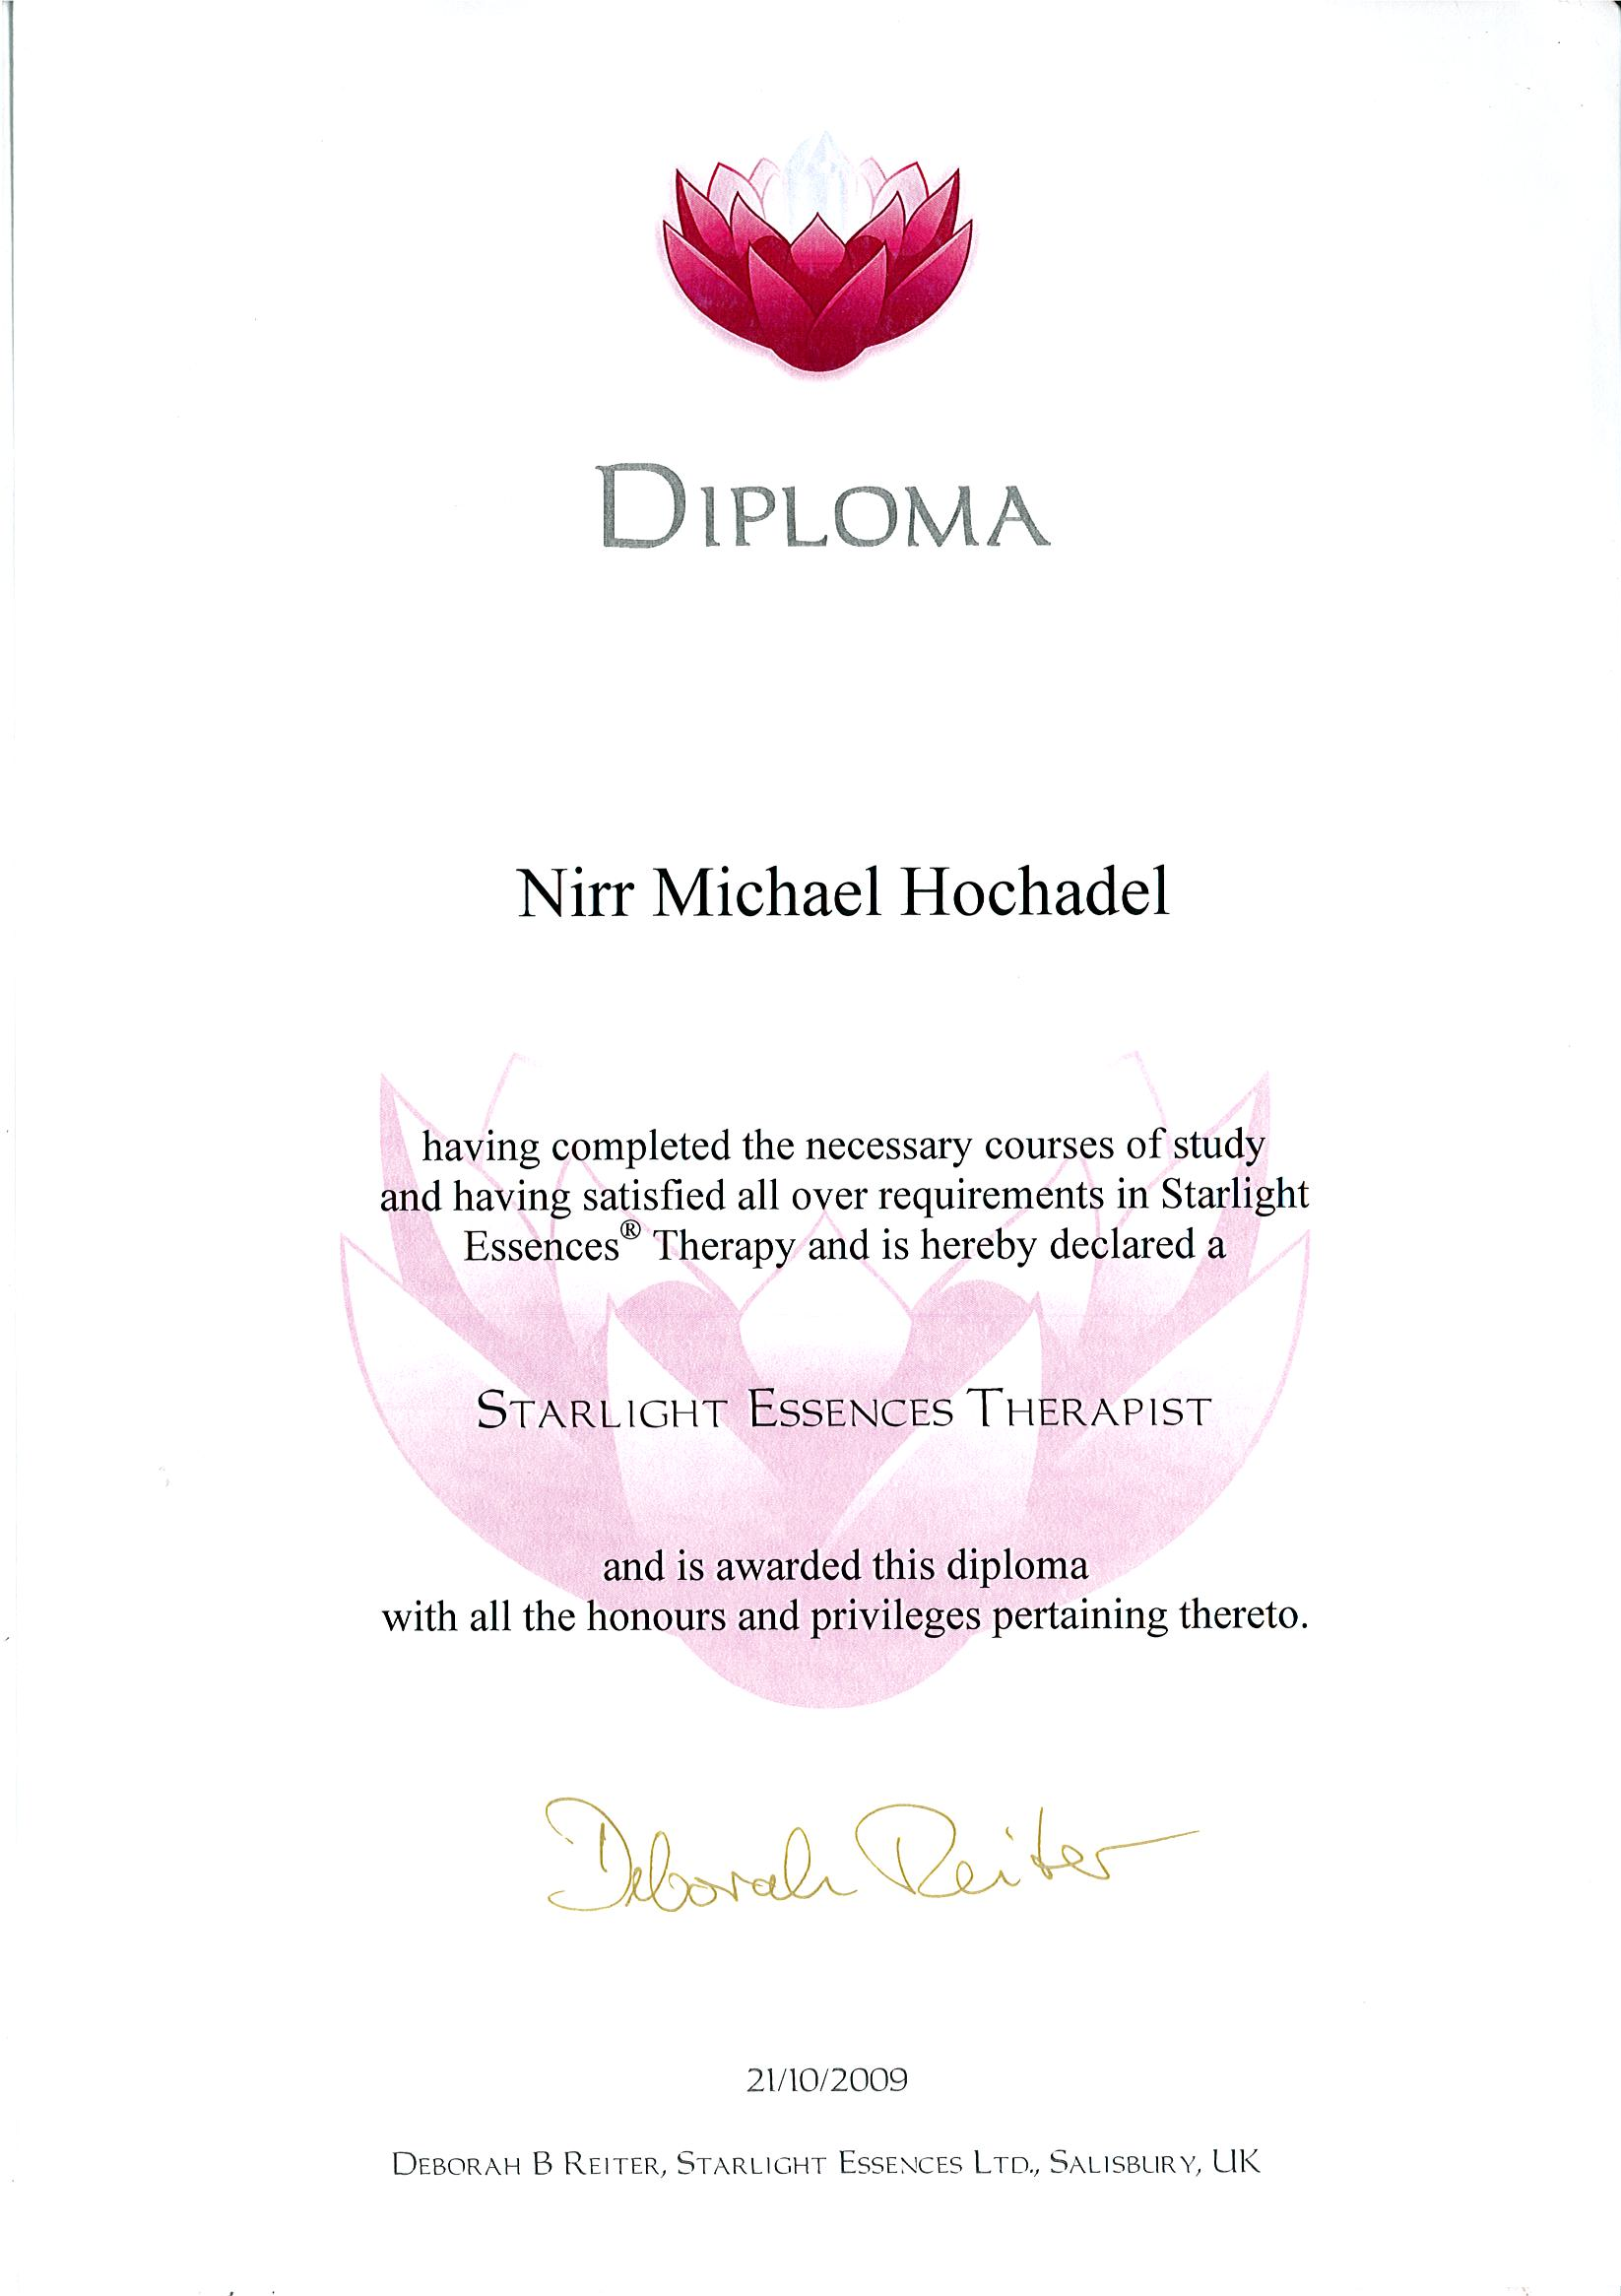 Diploma Starlight Essences Therapist